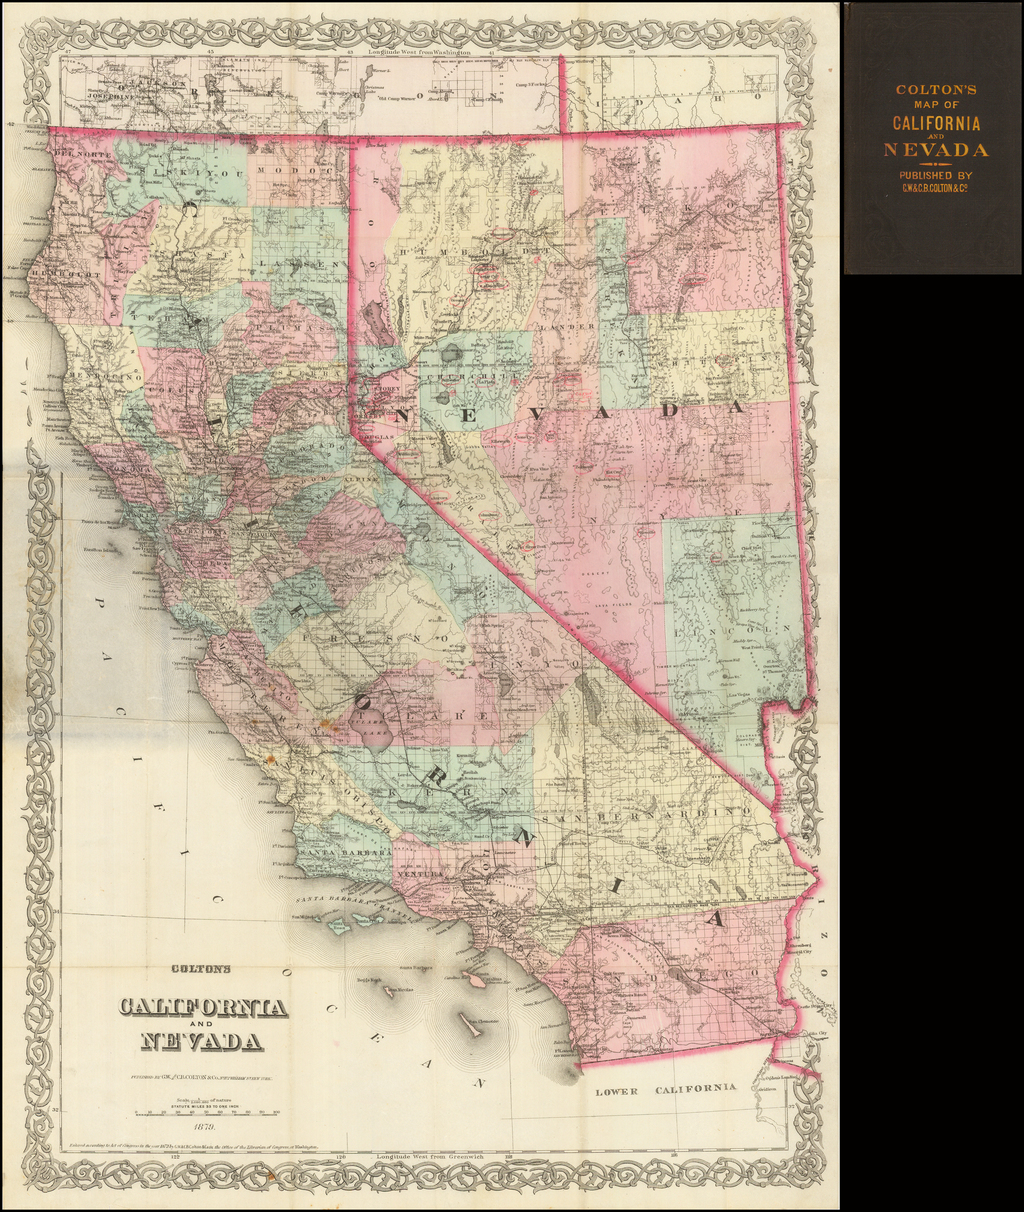 Colton's California and Nevada  1879 (Pocket Map) By G.W.  & C.B. Colton